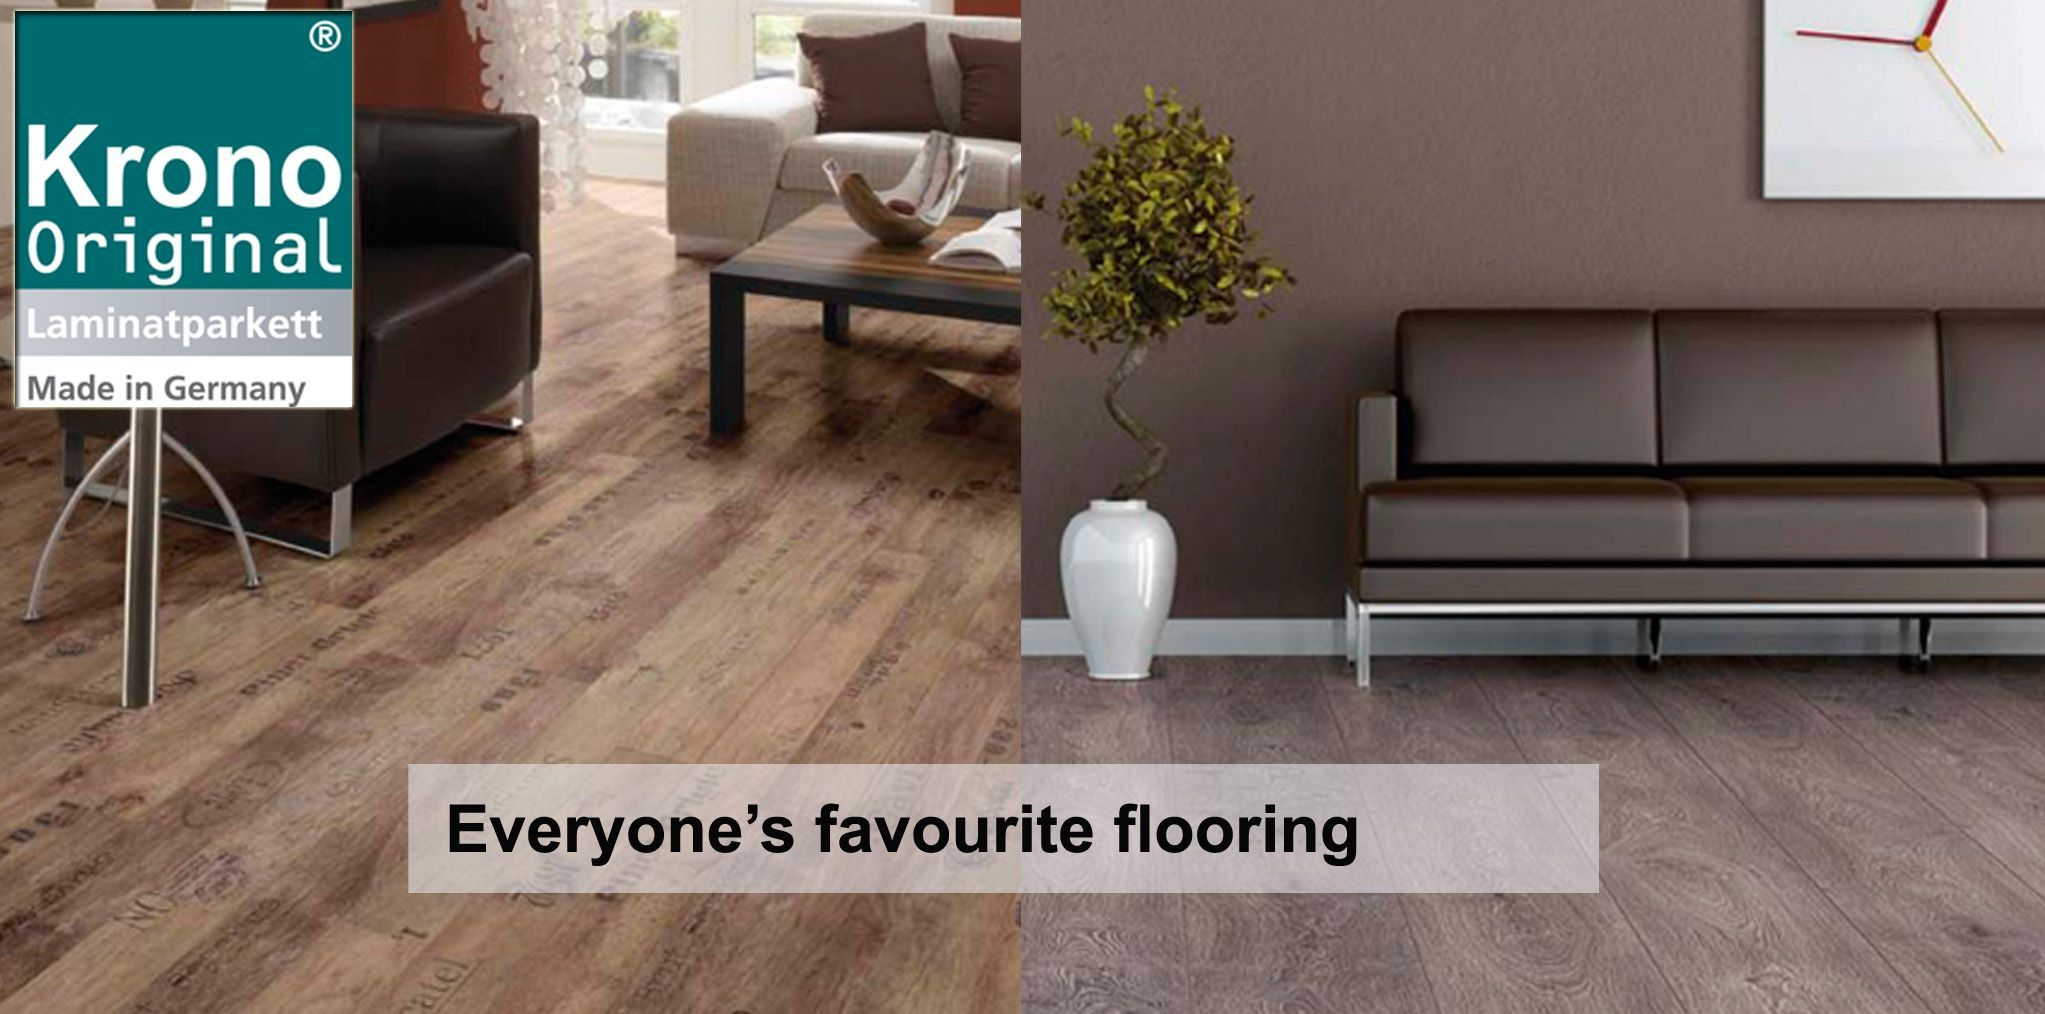 Krono Original laminate flooring comes in a range of colours and designs, in stone and authentic-looking wood, to suit your needs. To browse our selection of Krono flooring please click on the following link: http://creativeflooring.co.uk/krono-landing